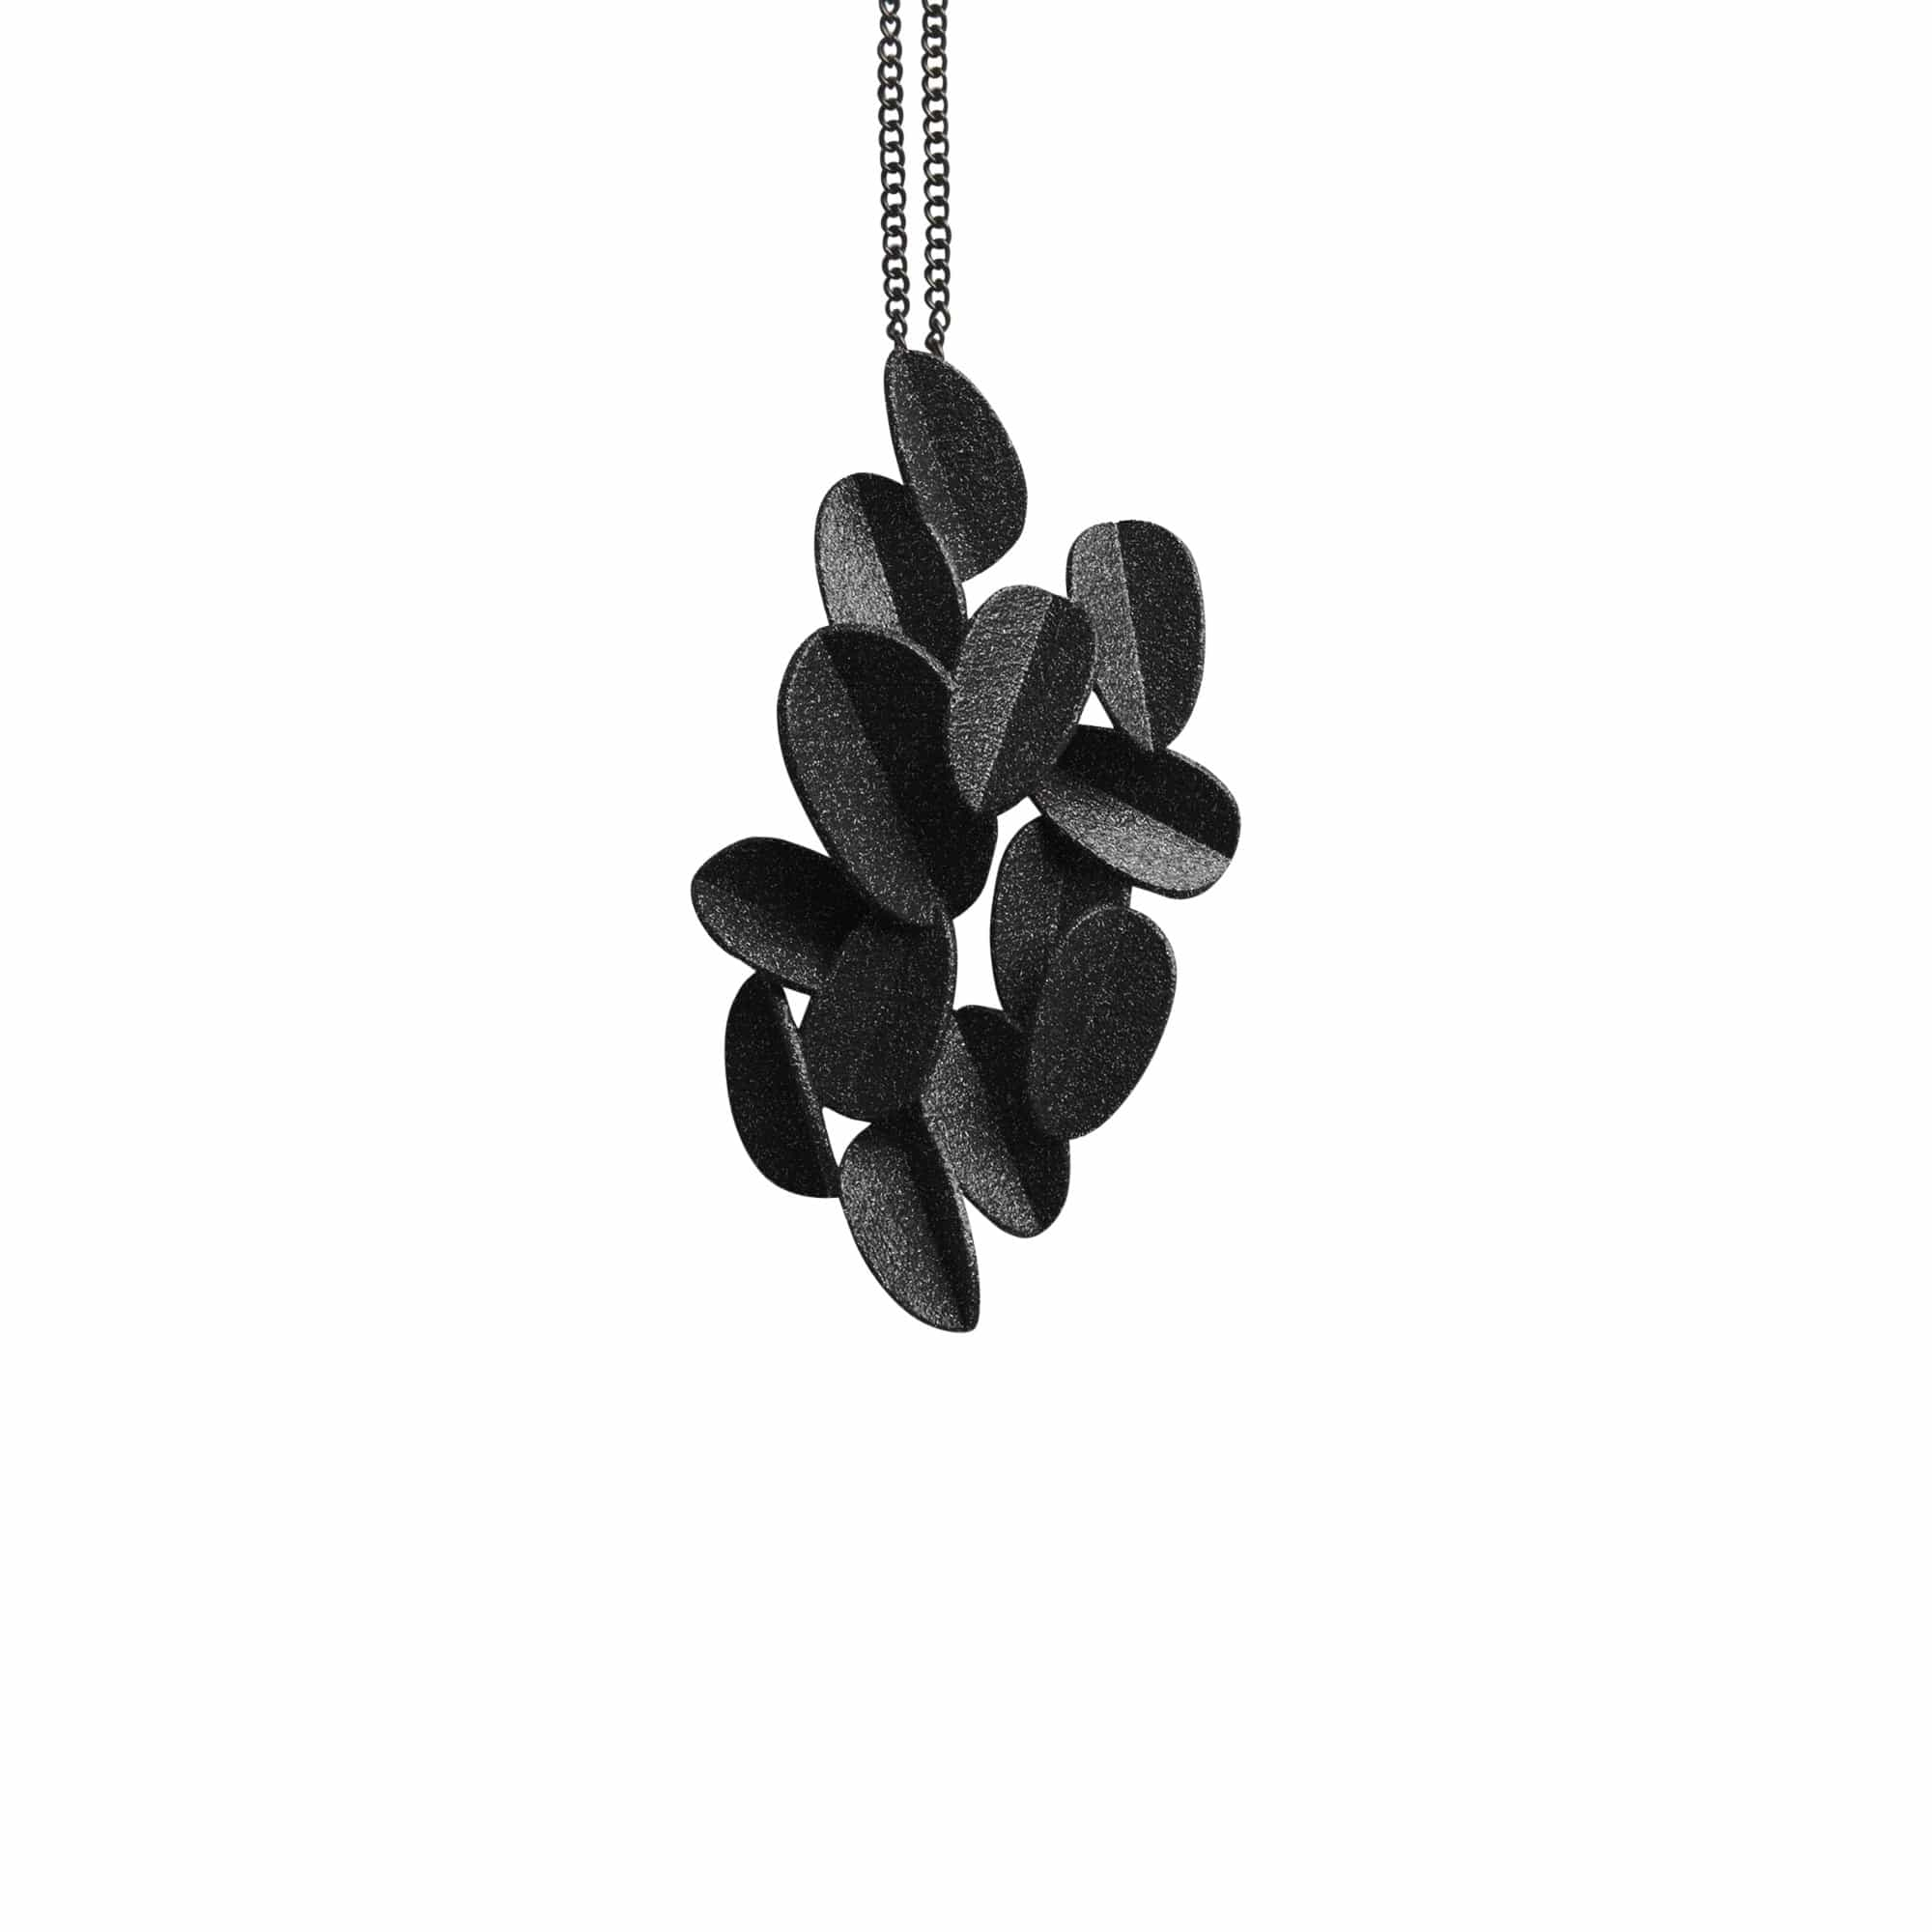 maison 203 Necklaces Black Metallic Leaves Chain Necklace